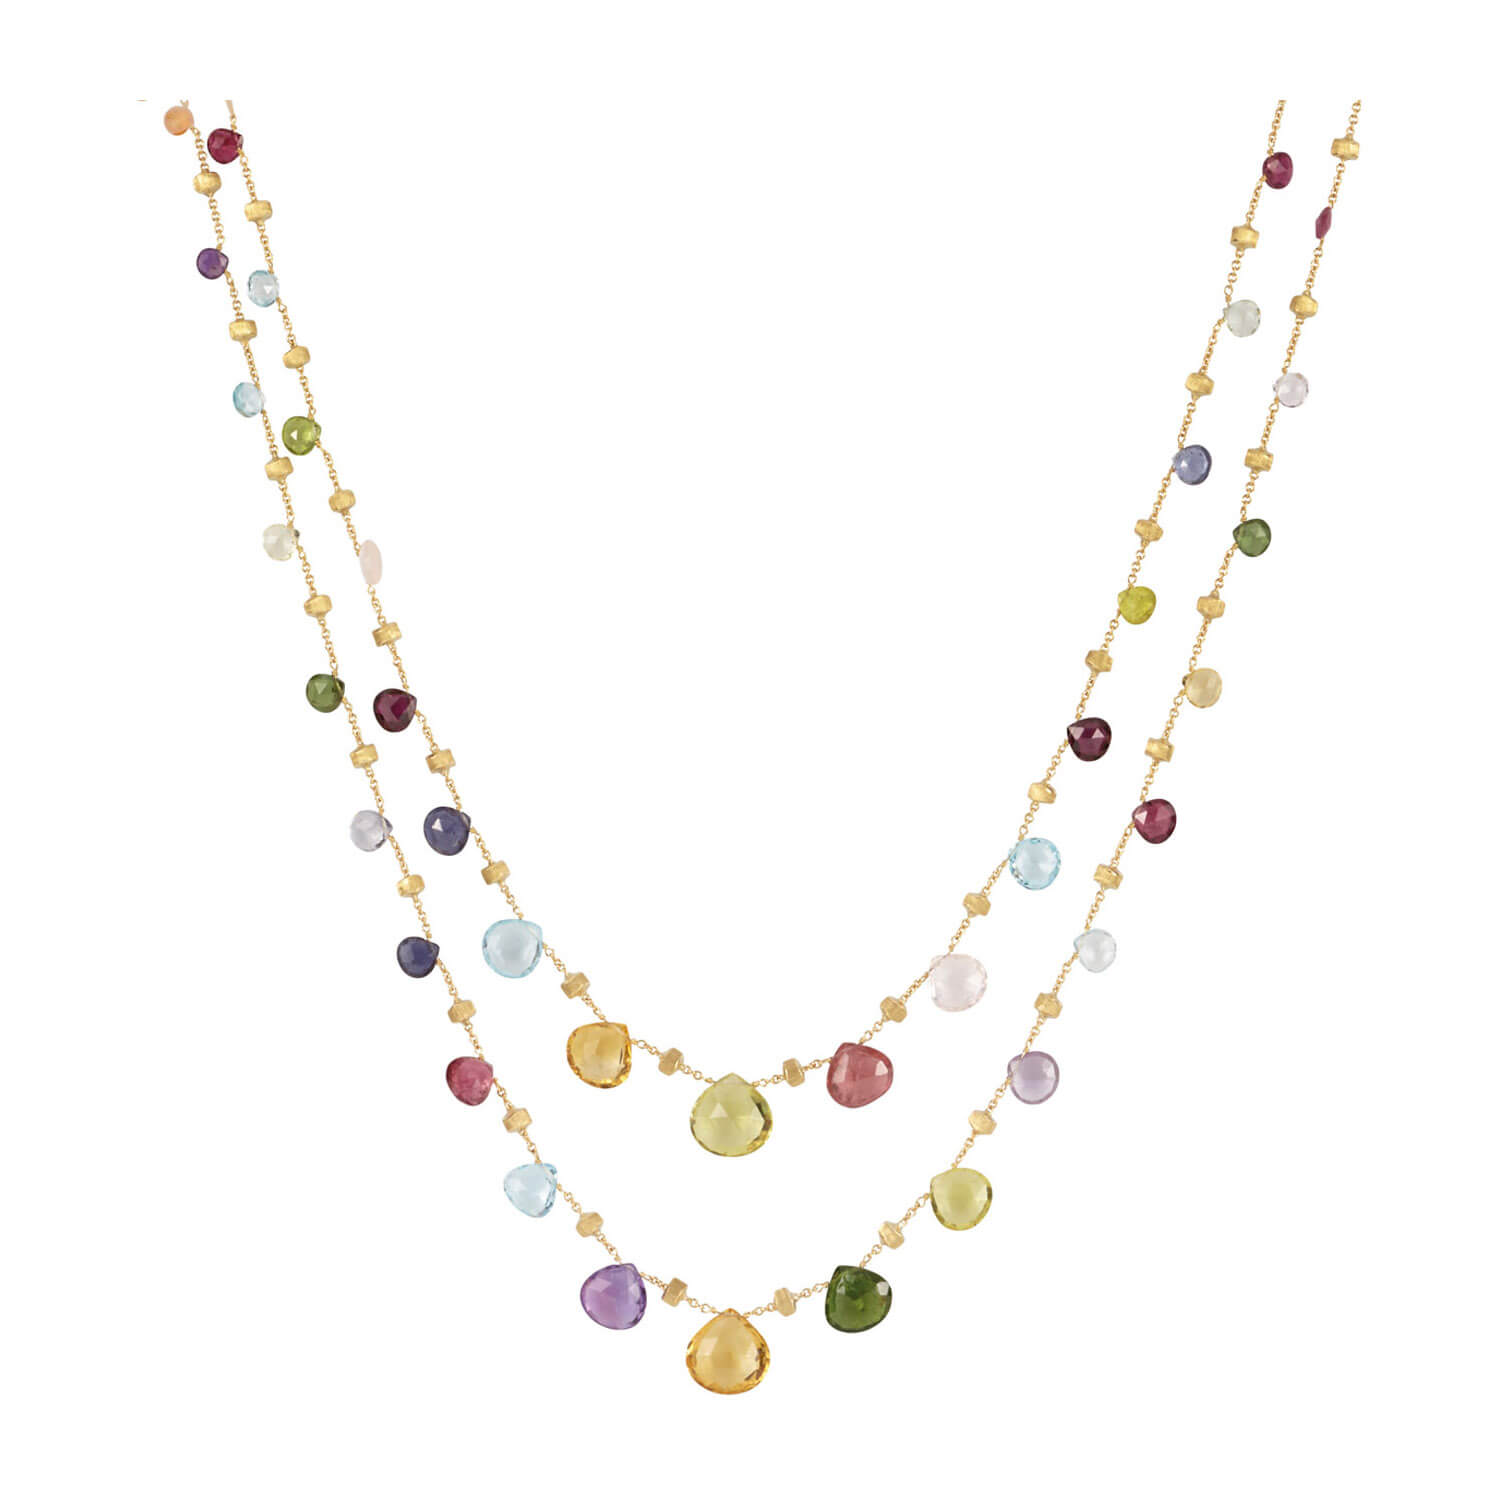 Marco Bicego Paradise 18ct Yellow Gold & Mixed Stone Graduated Long Necklace